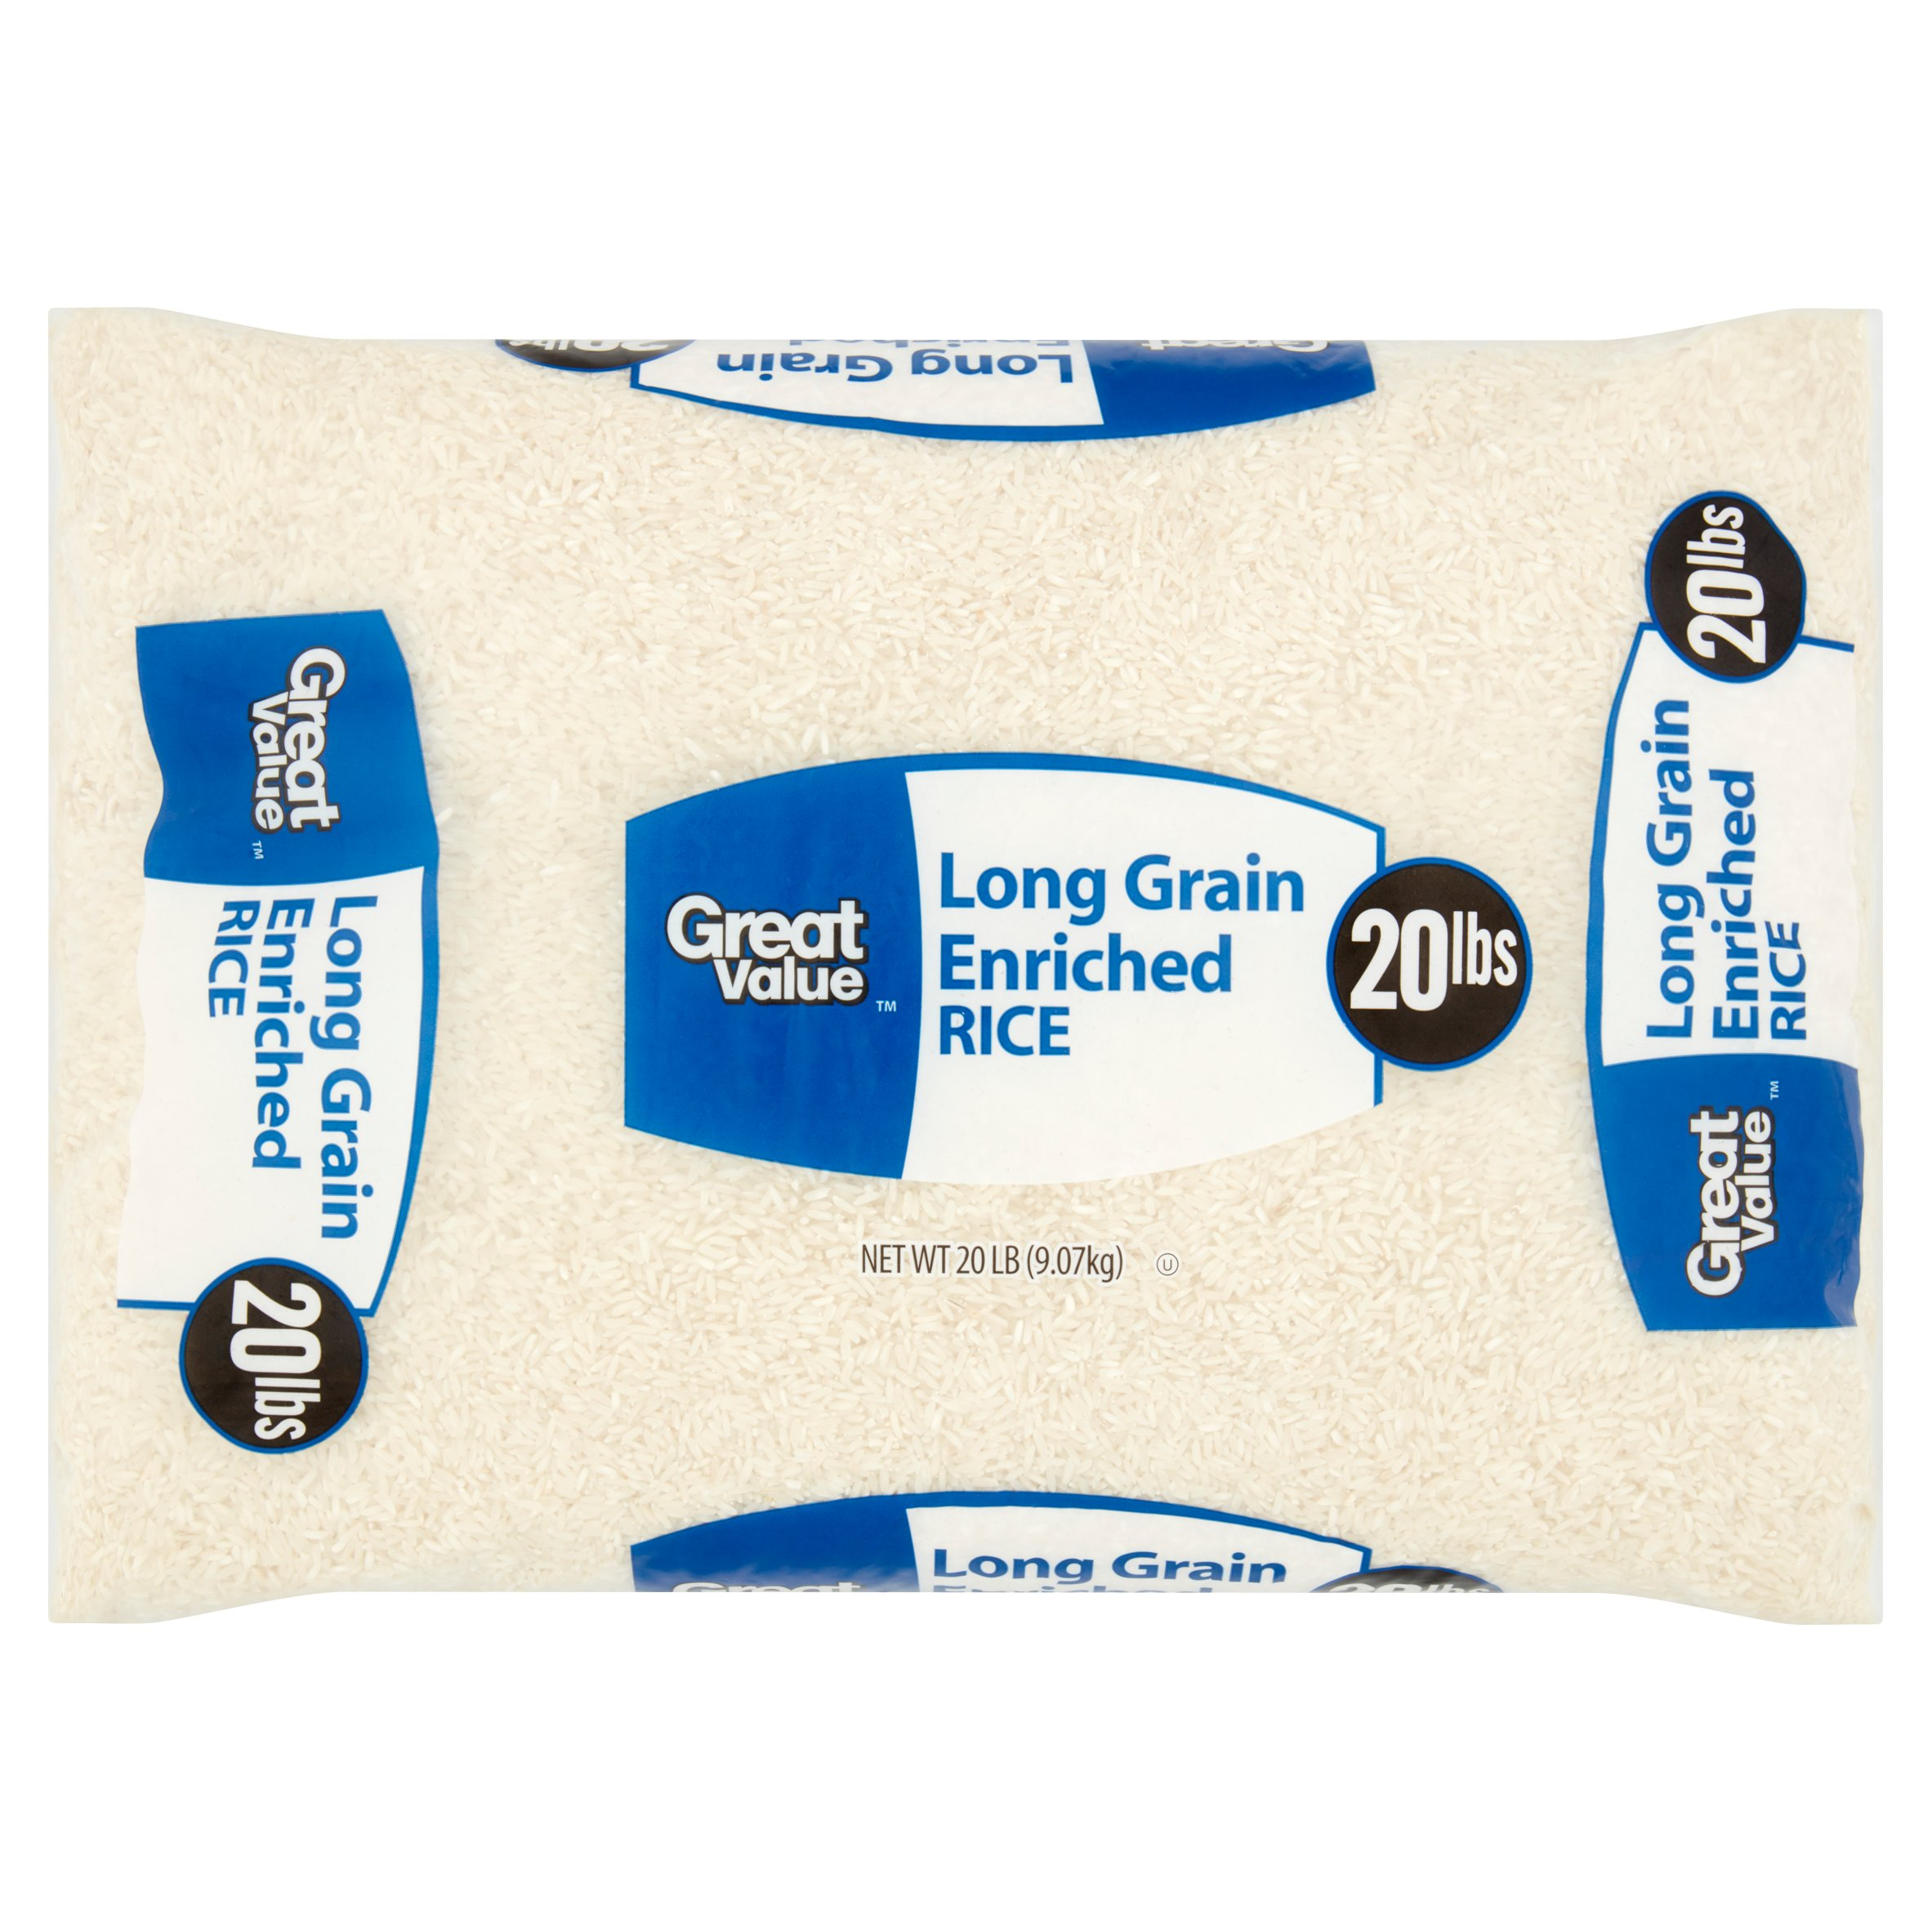 Great Value Long Grain Enriched Rice 20 Lb Walmart Com